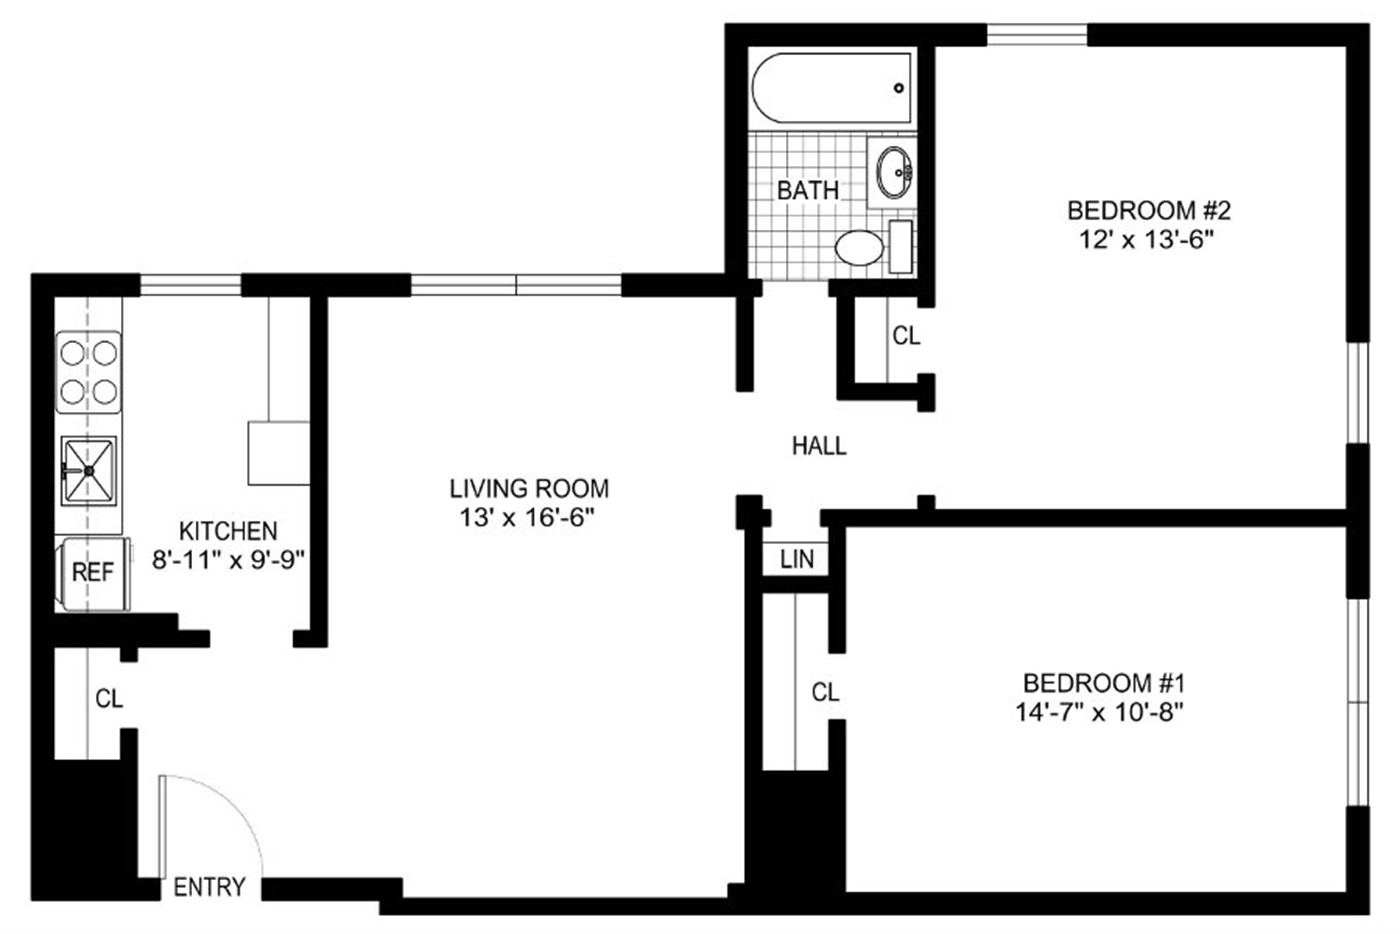 Floor plan templates floor plan templates printable free for Room design template grid